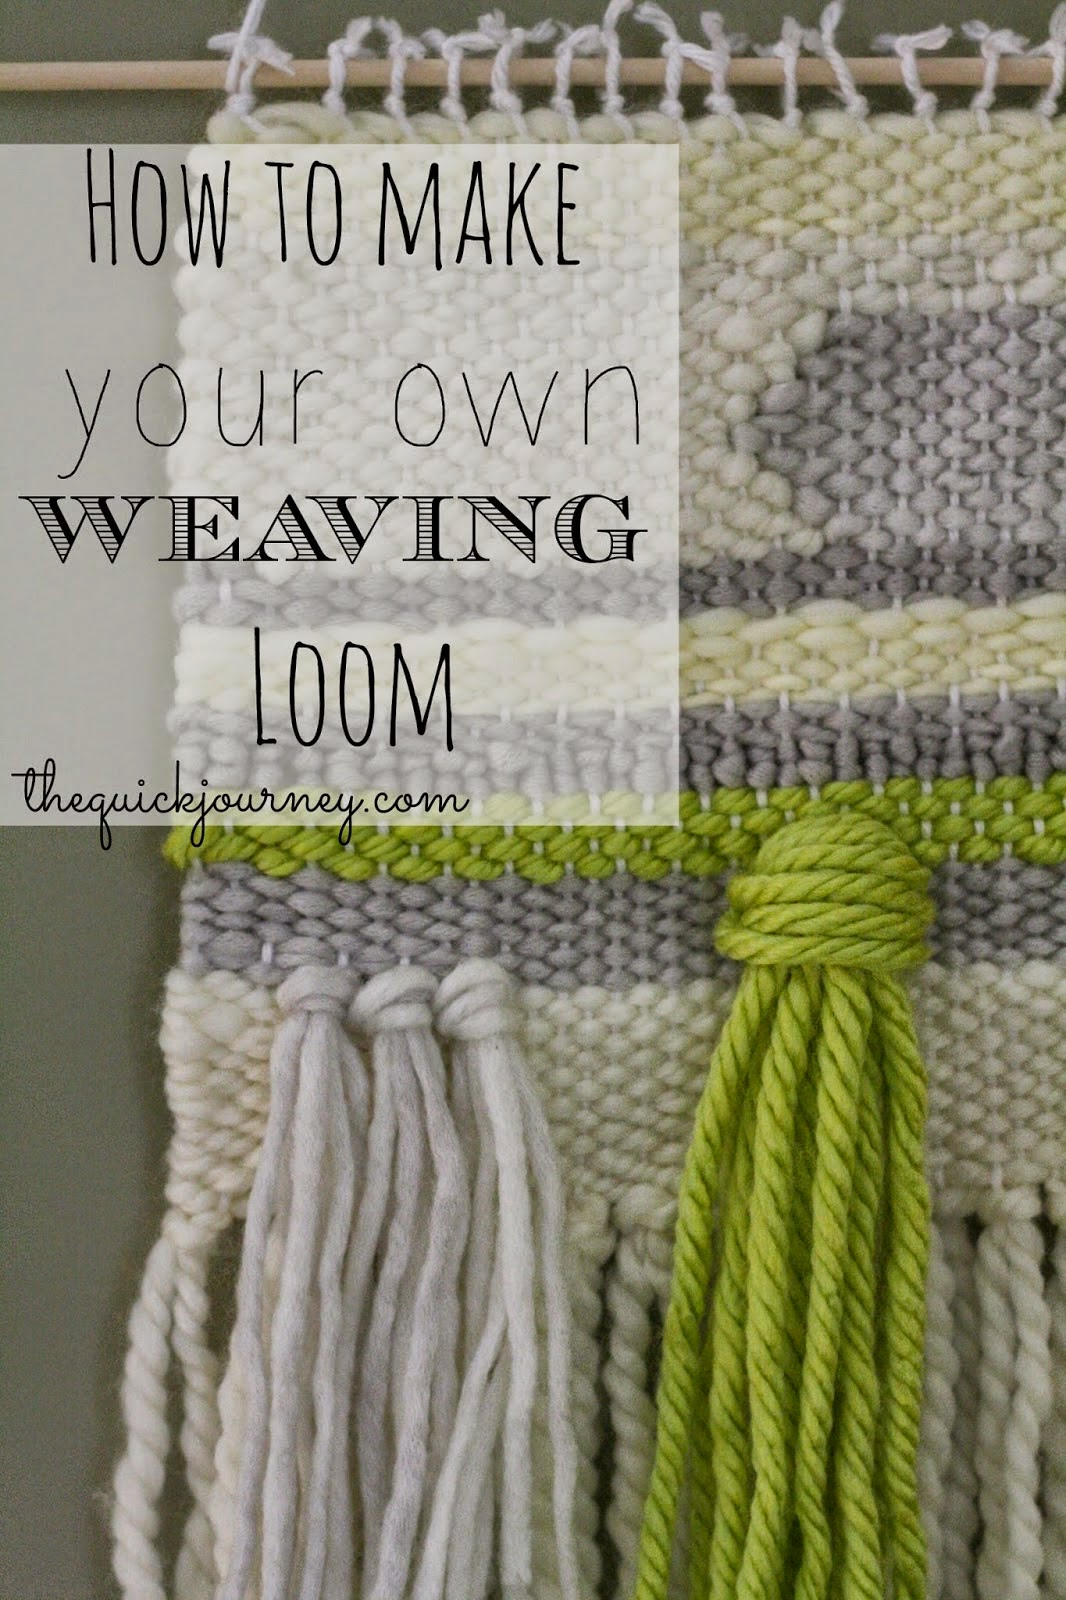 DIY Weaving Loom, shared by The Quick Journey